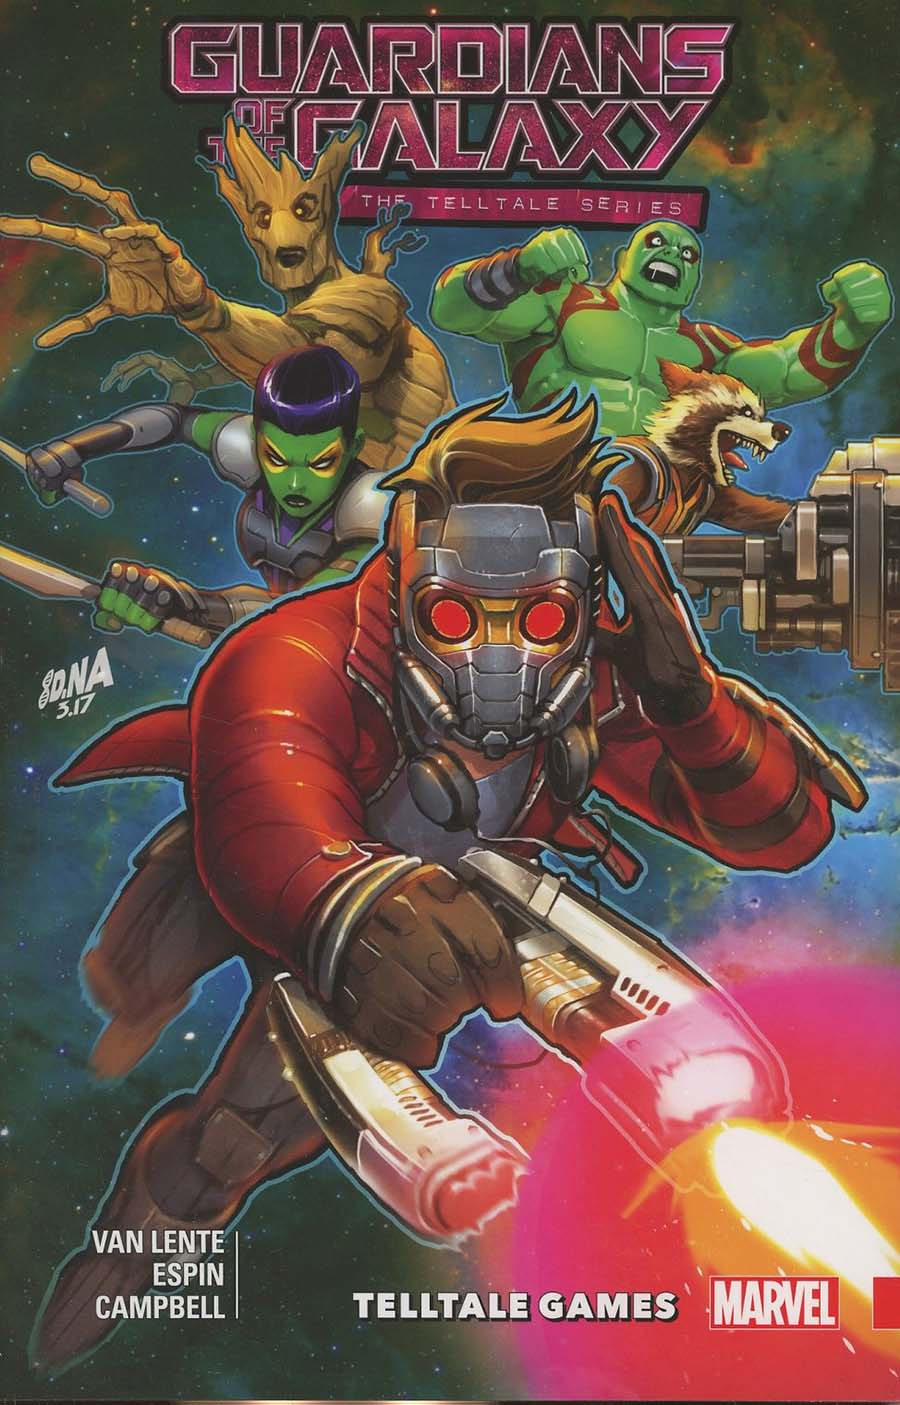 Guardians Of The Galaxy Telltale Games TP